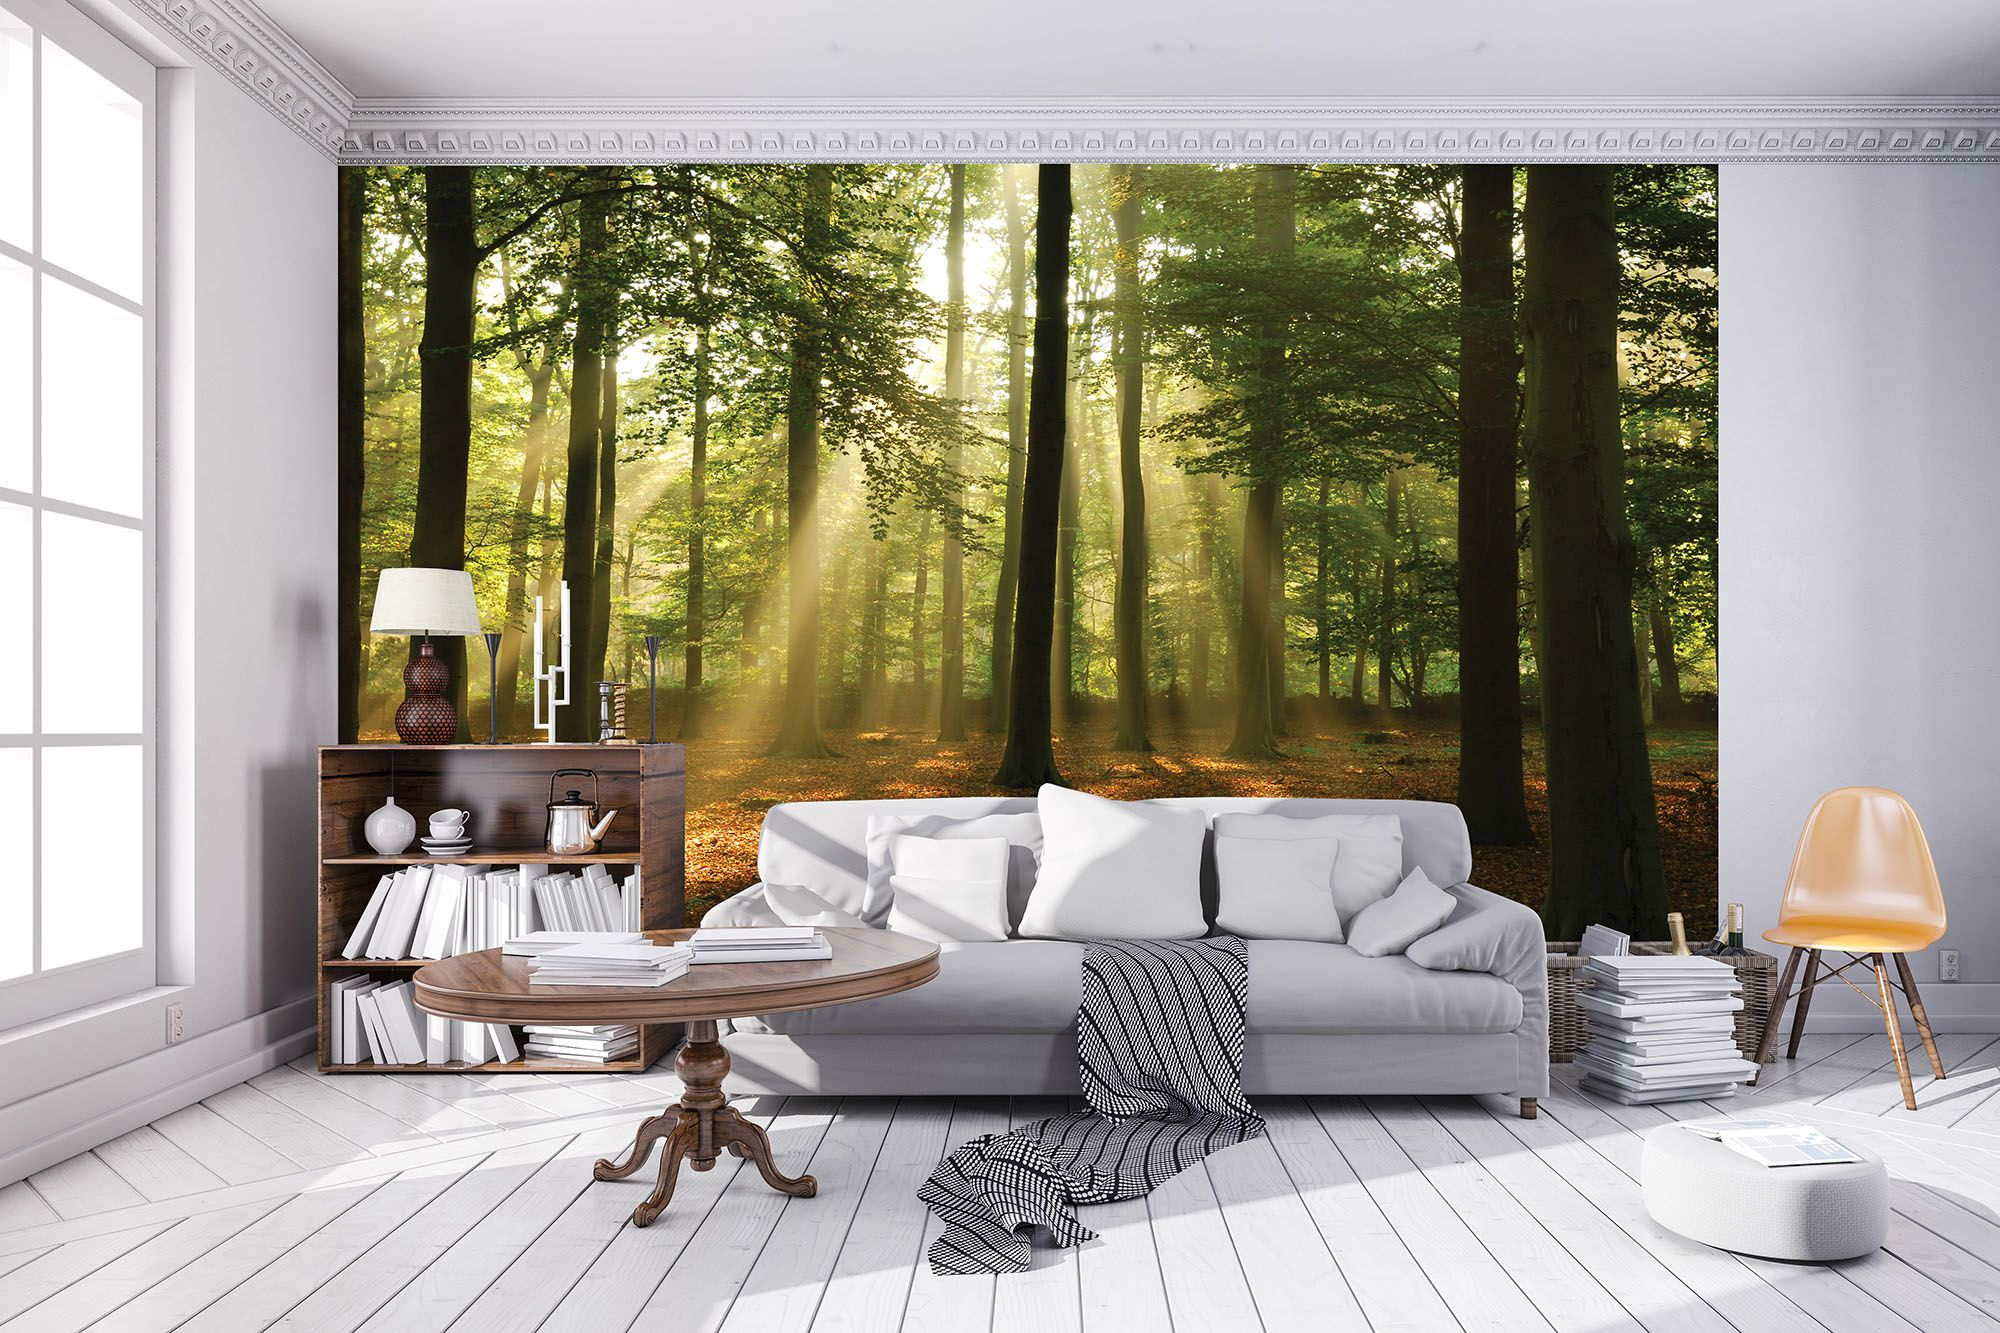 Living room giant Wall Mural photo wallpaper 368x254cm Green Summer forest